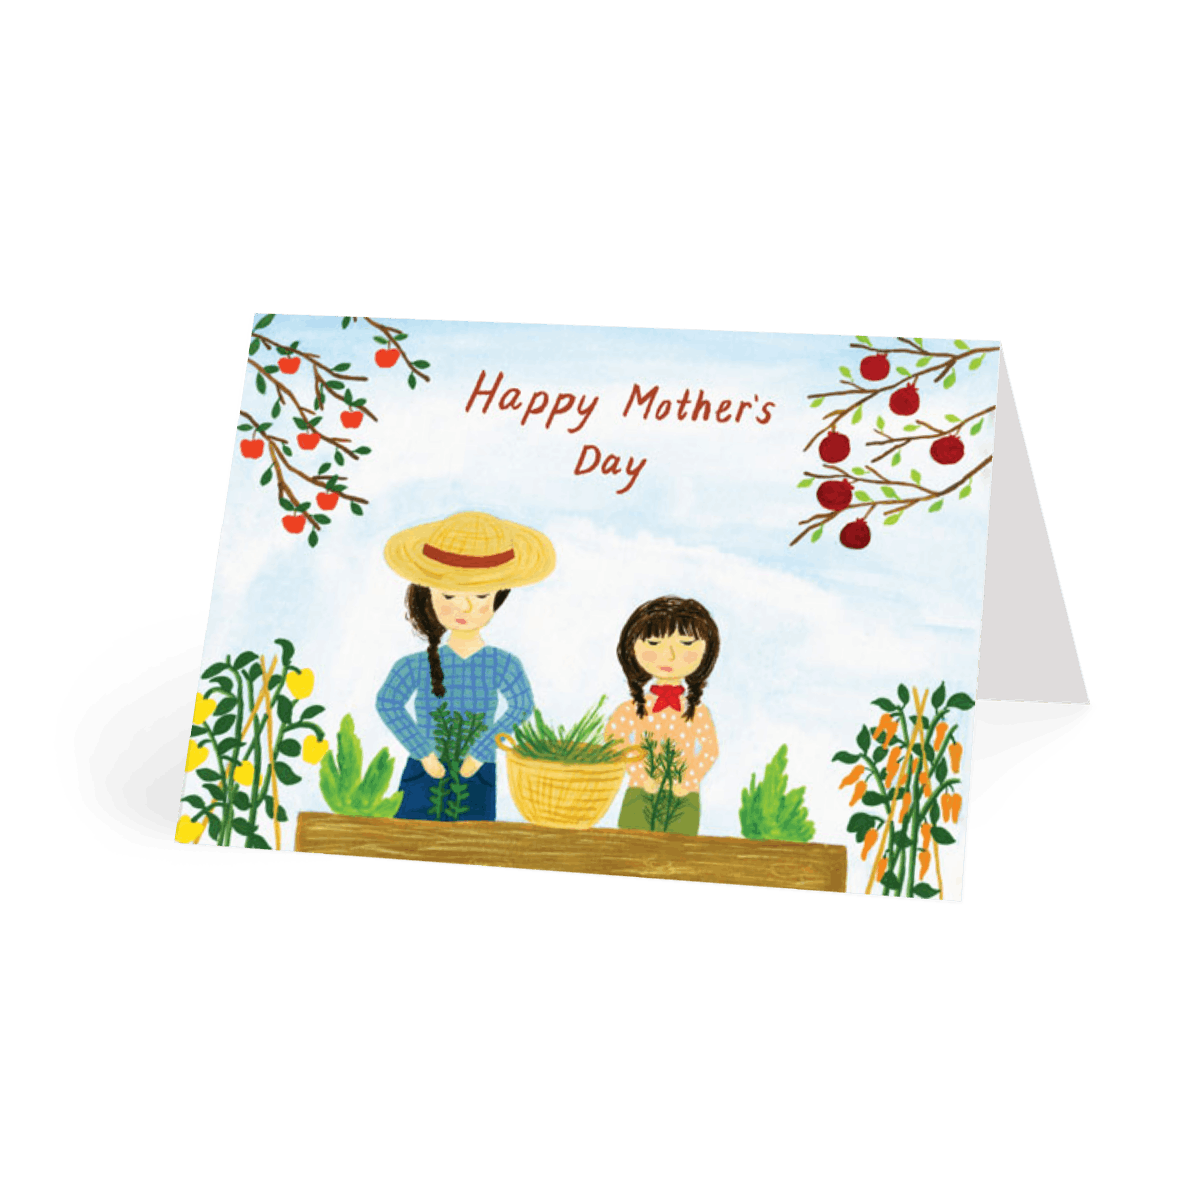 Https%3a%2f%2fwww.papier.com%2fproduct image%2f17336%2f14%2fmother s day gardening 4551 front 1488887101.png?ixlib=rb 1.1